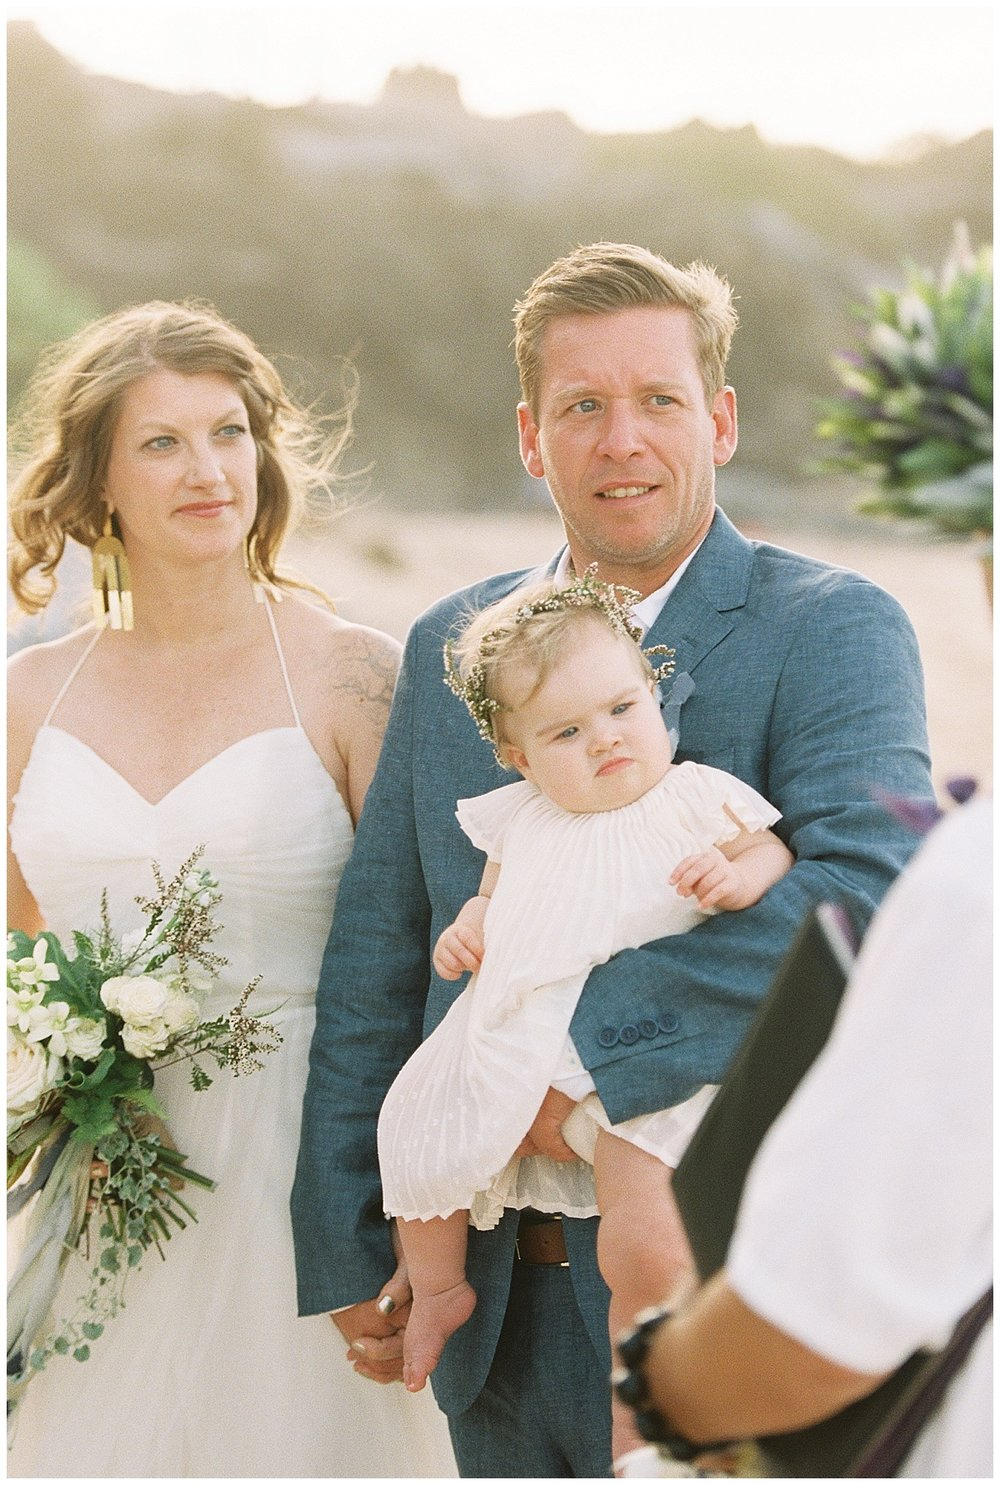 beach-elopement-bride-groom-baby-girl-looking-at-officiant.jpg